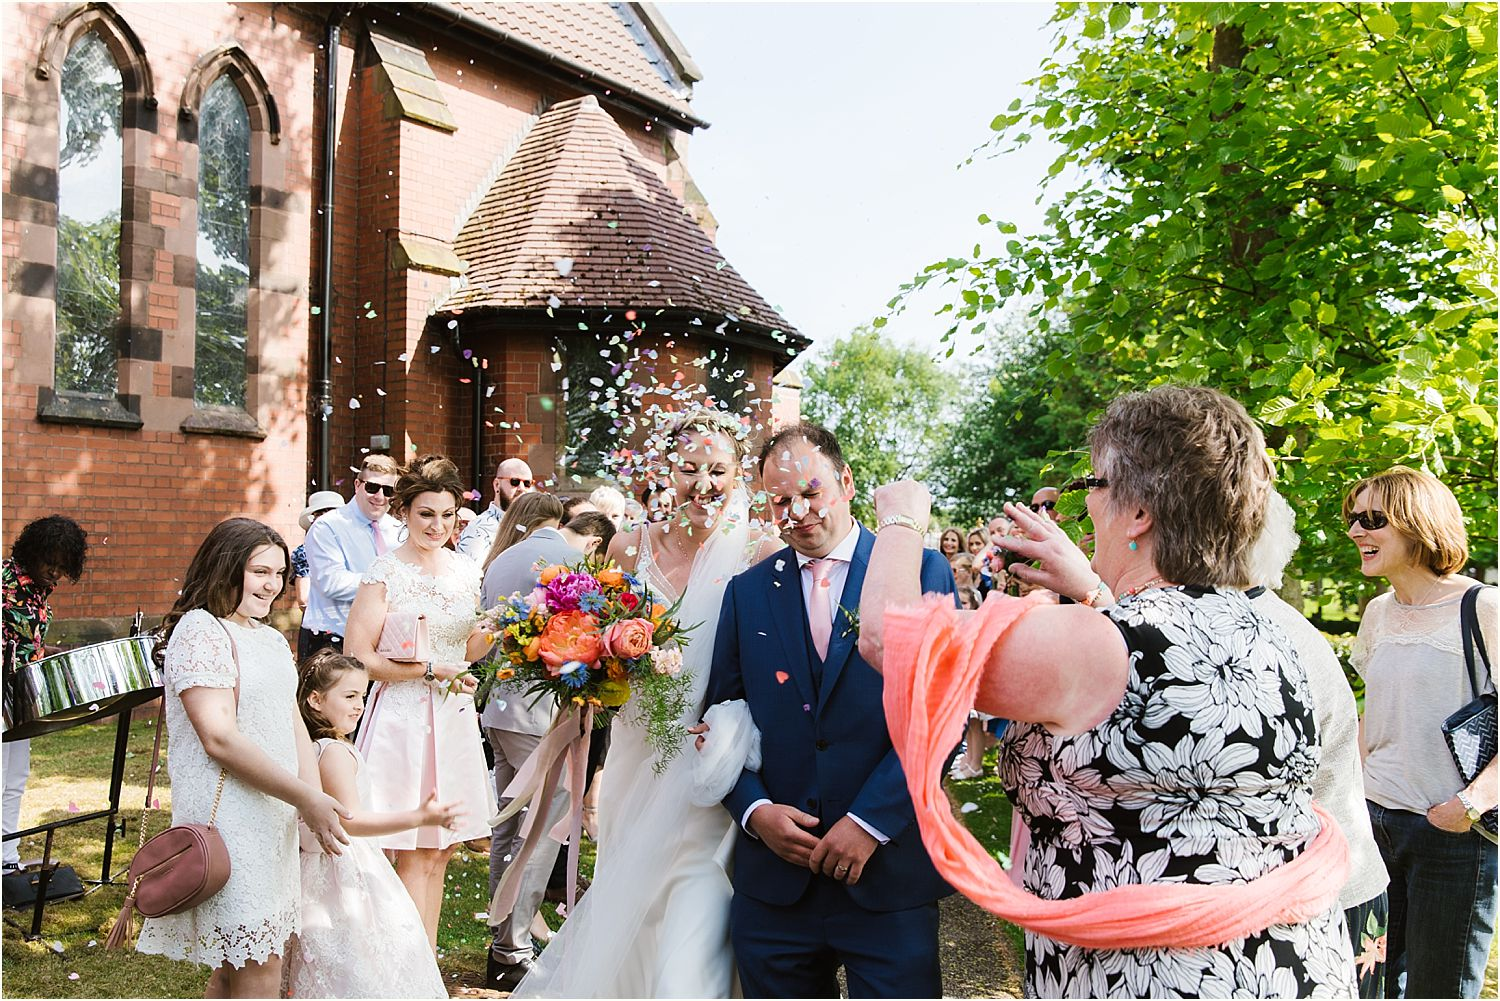 Bride and groom in confetti shower at Lancashire wedding